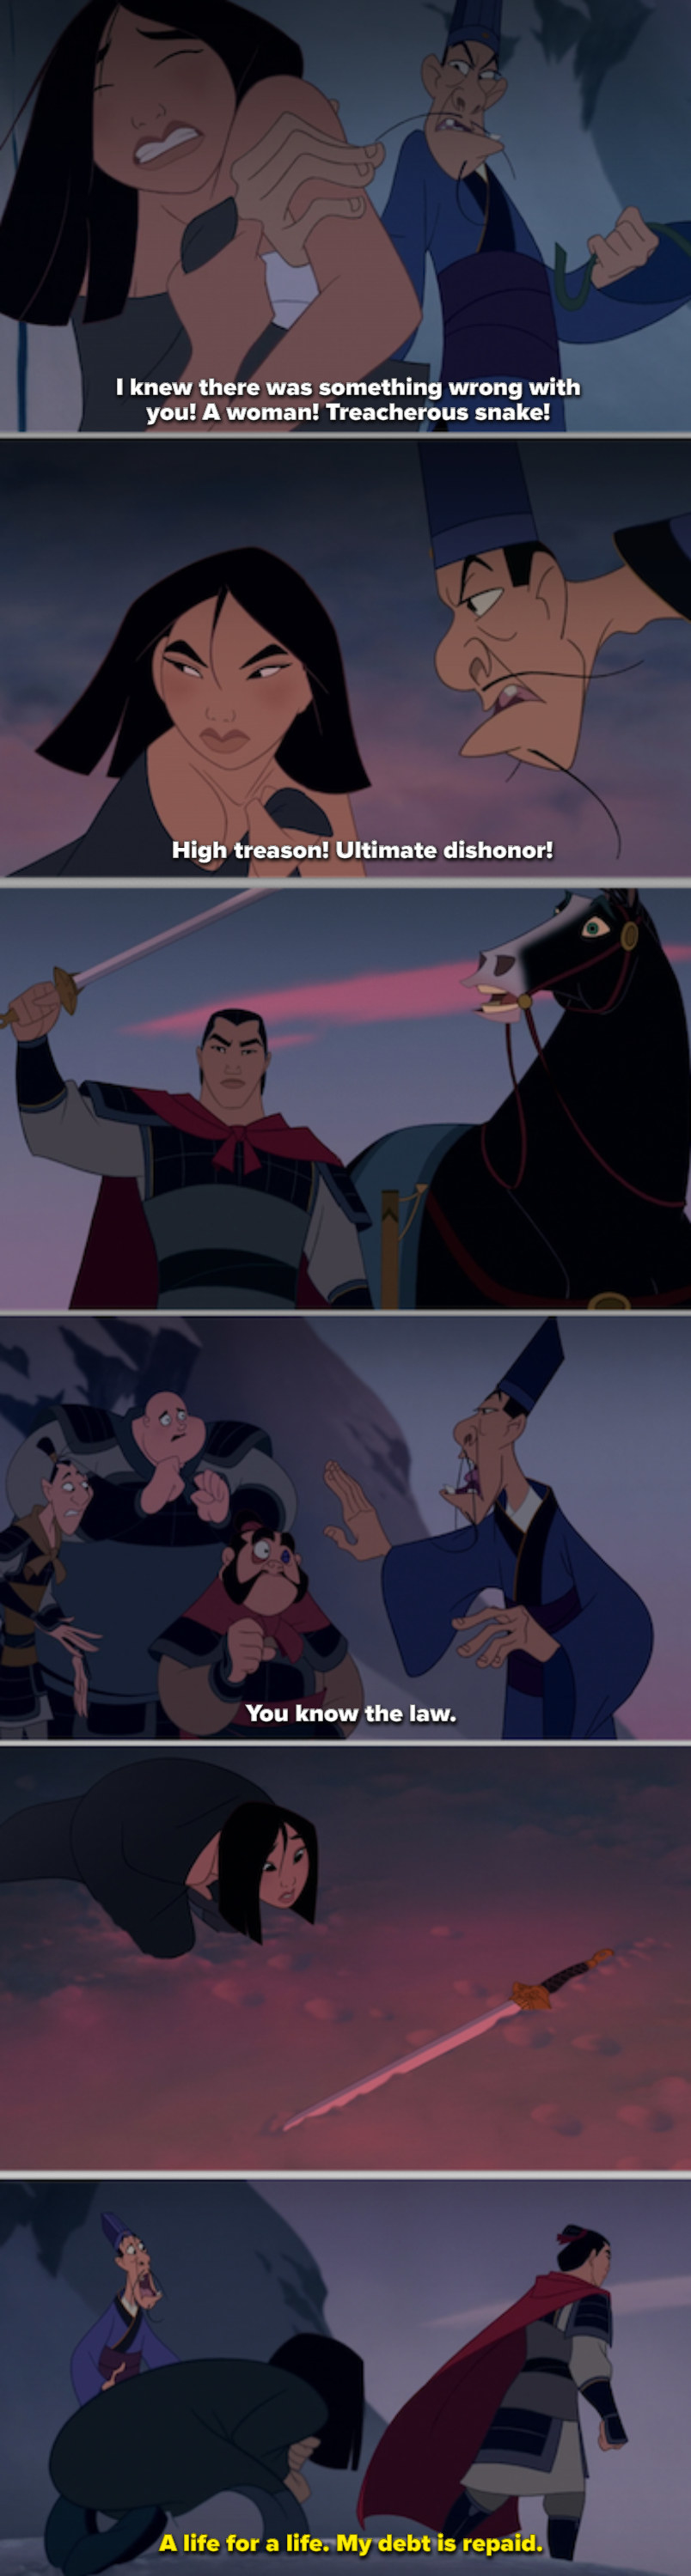 Mulan being thrown to the snowy ground and then sacrificed by Li Shang